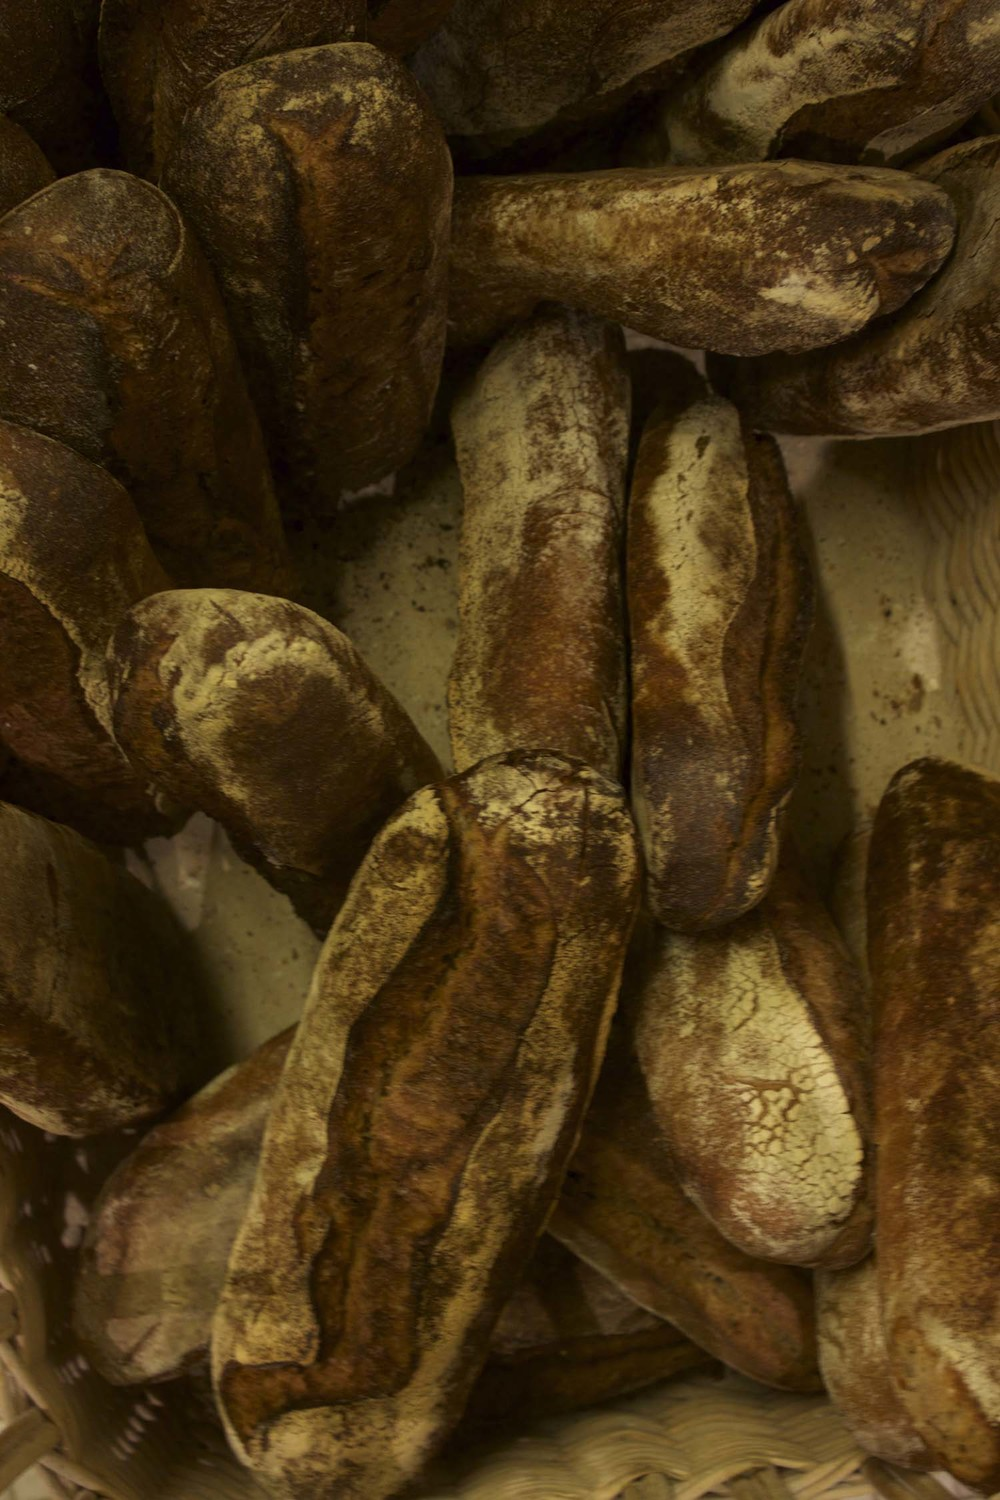 Bread | Image: Laura Messersmith